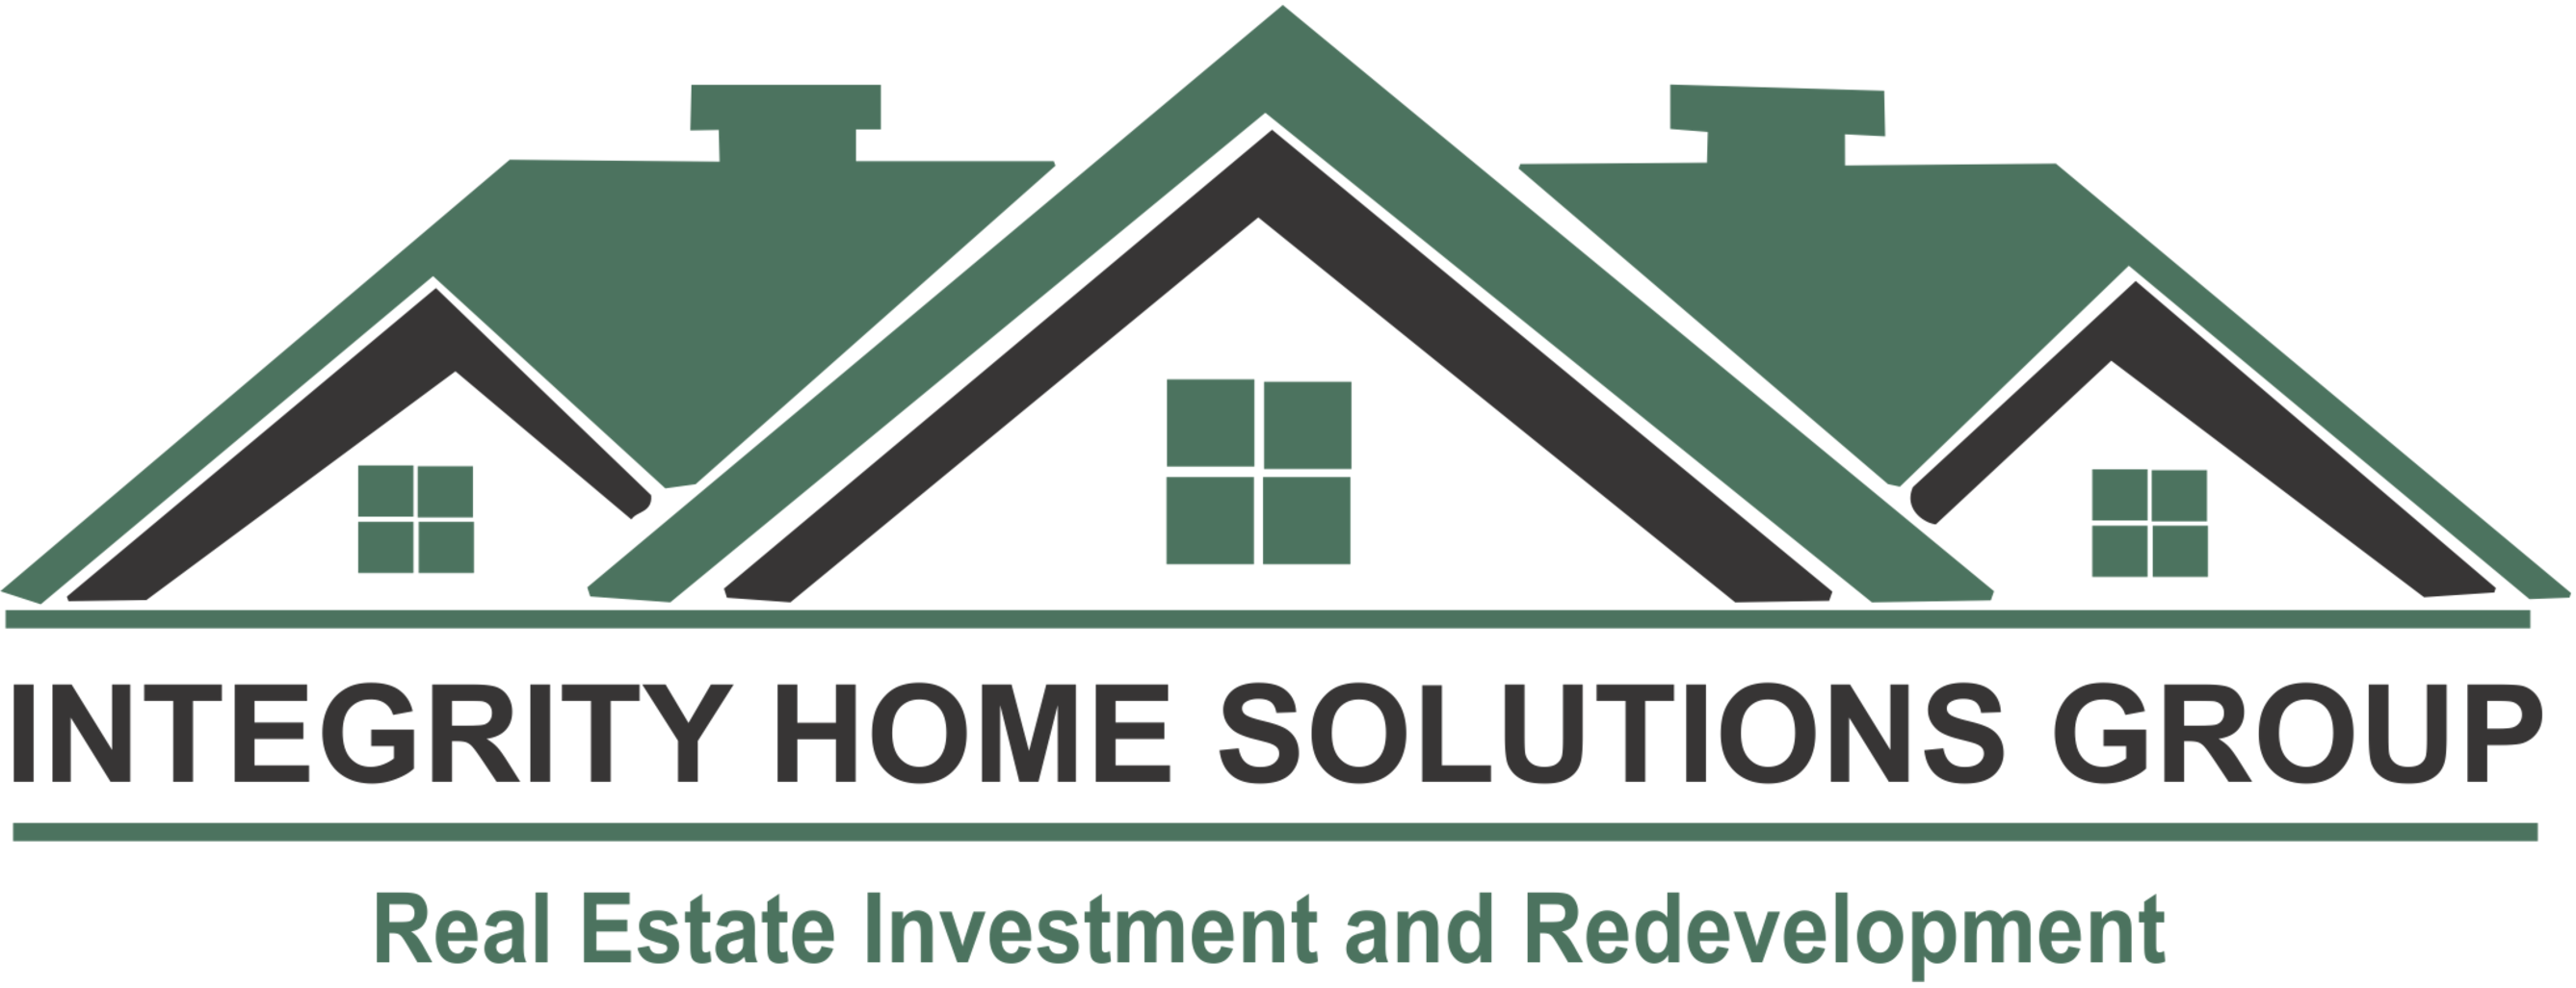 Integrity Home Solutions Group, LLC